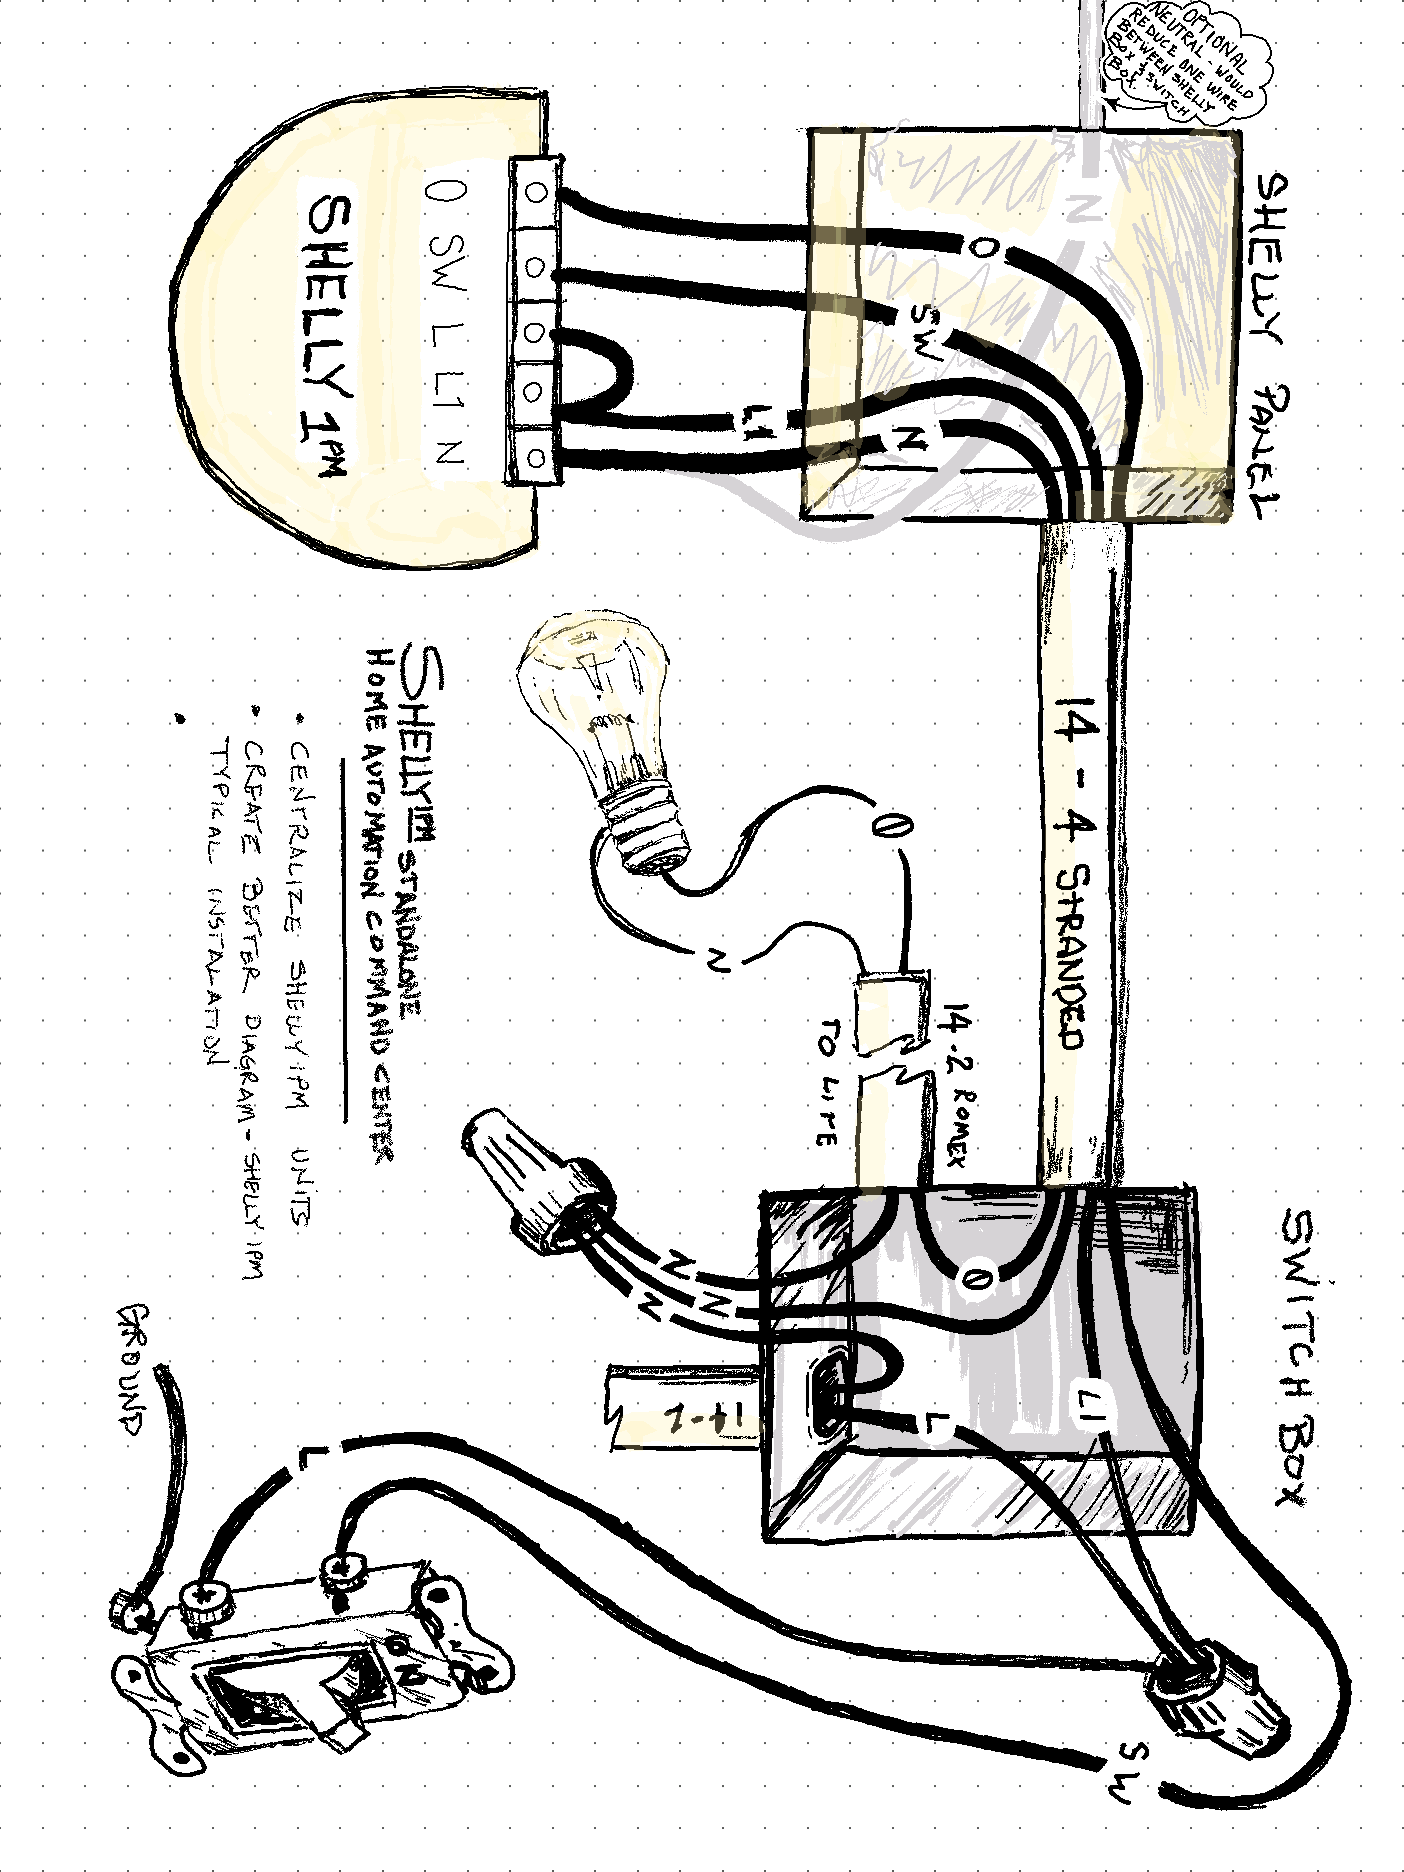 Shelly 1pm Wiring Diagram U S 120v In Line With Functional Light Switch En 2021 Domotica Thing 1